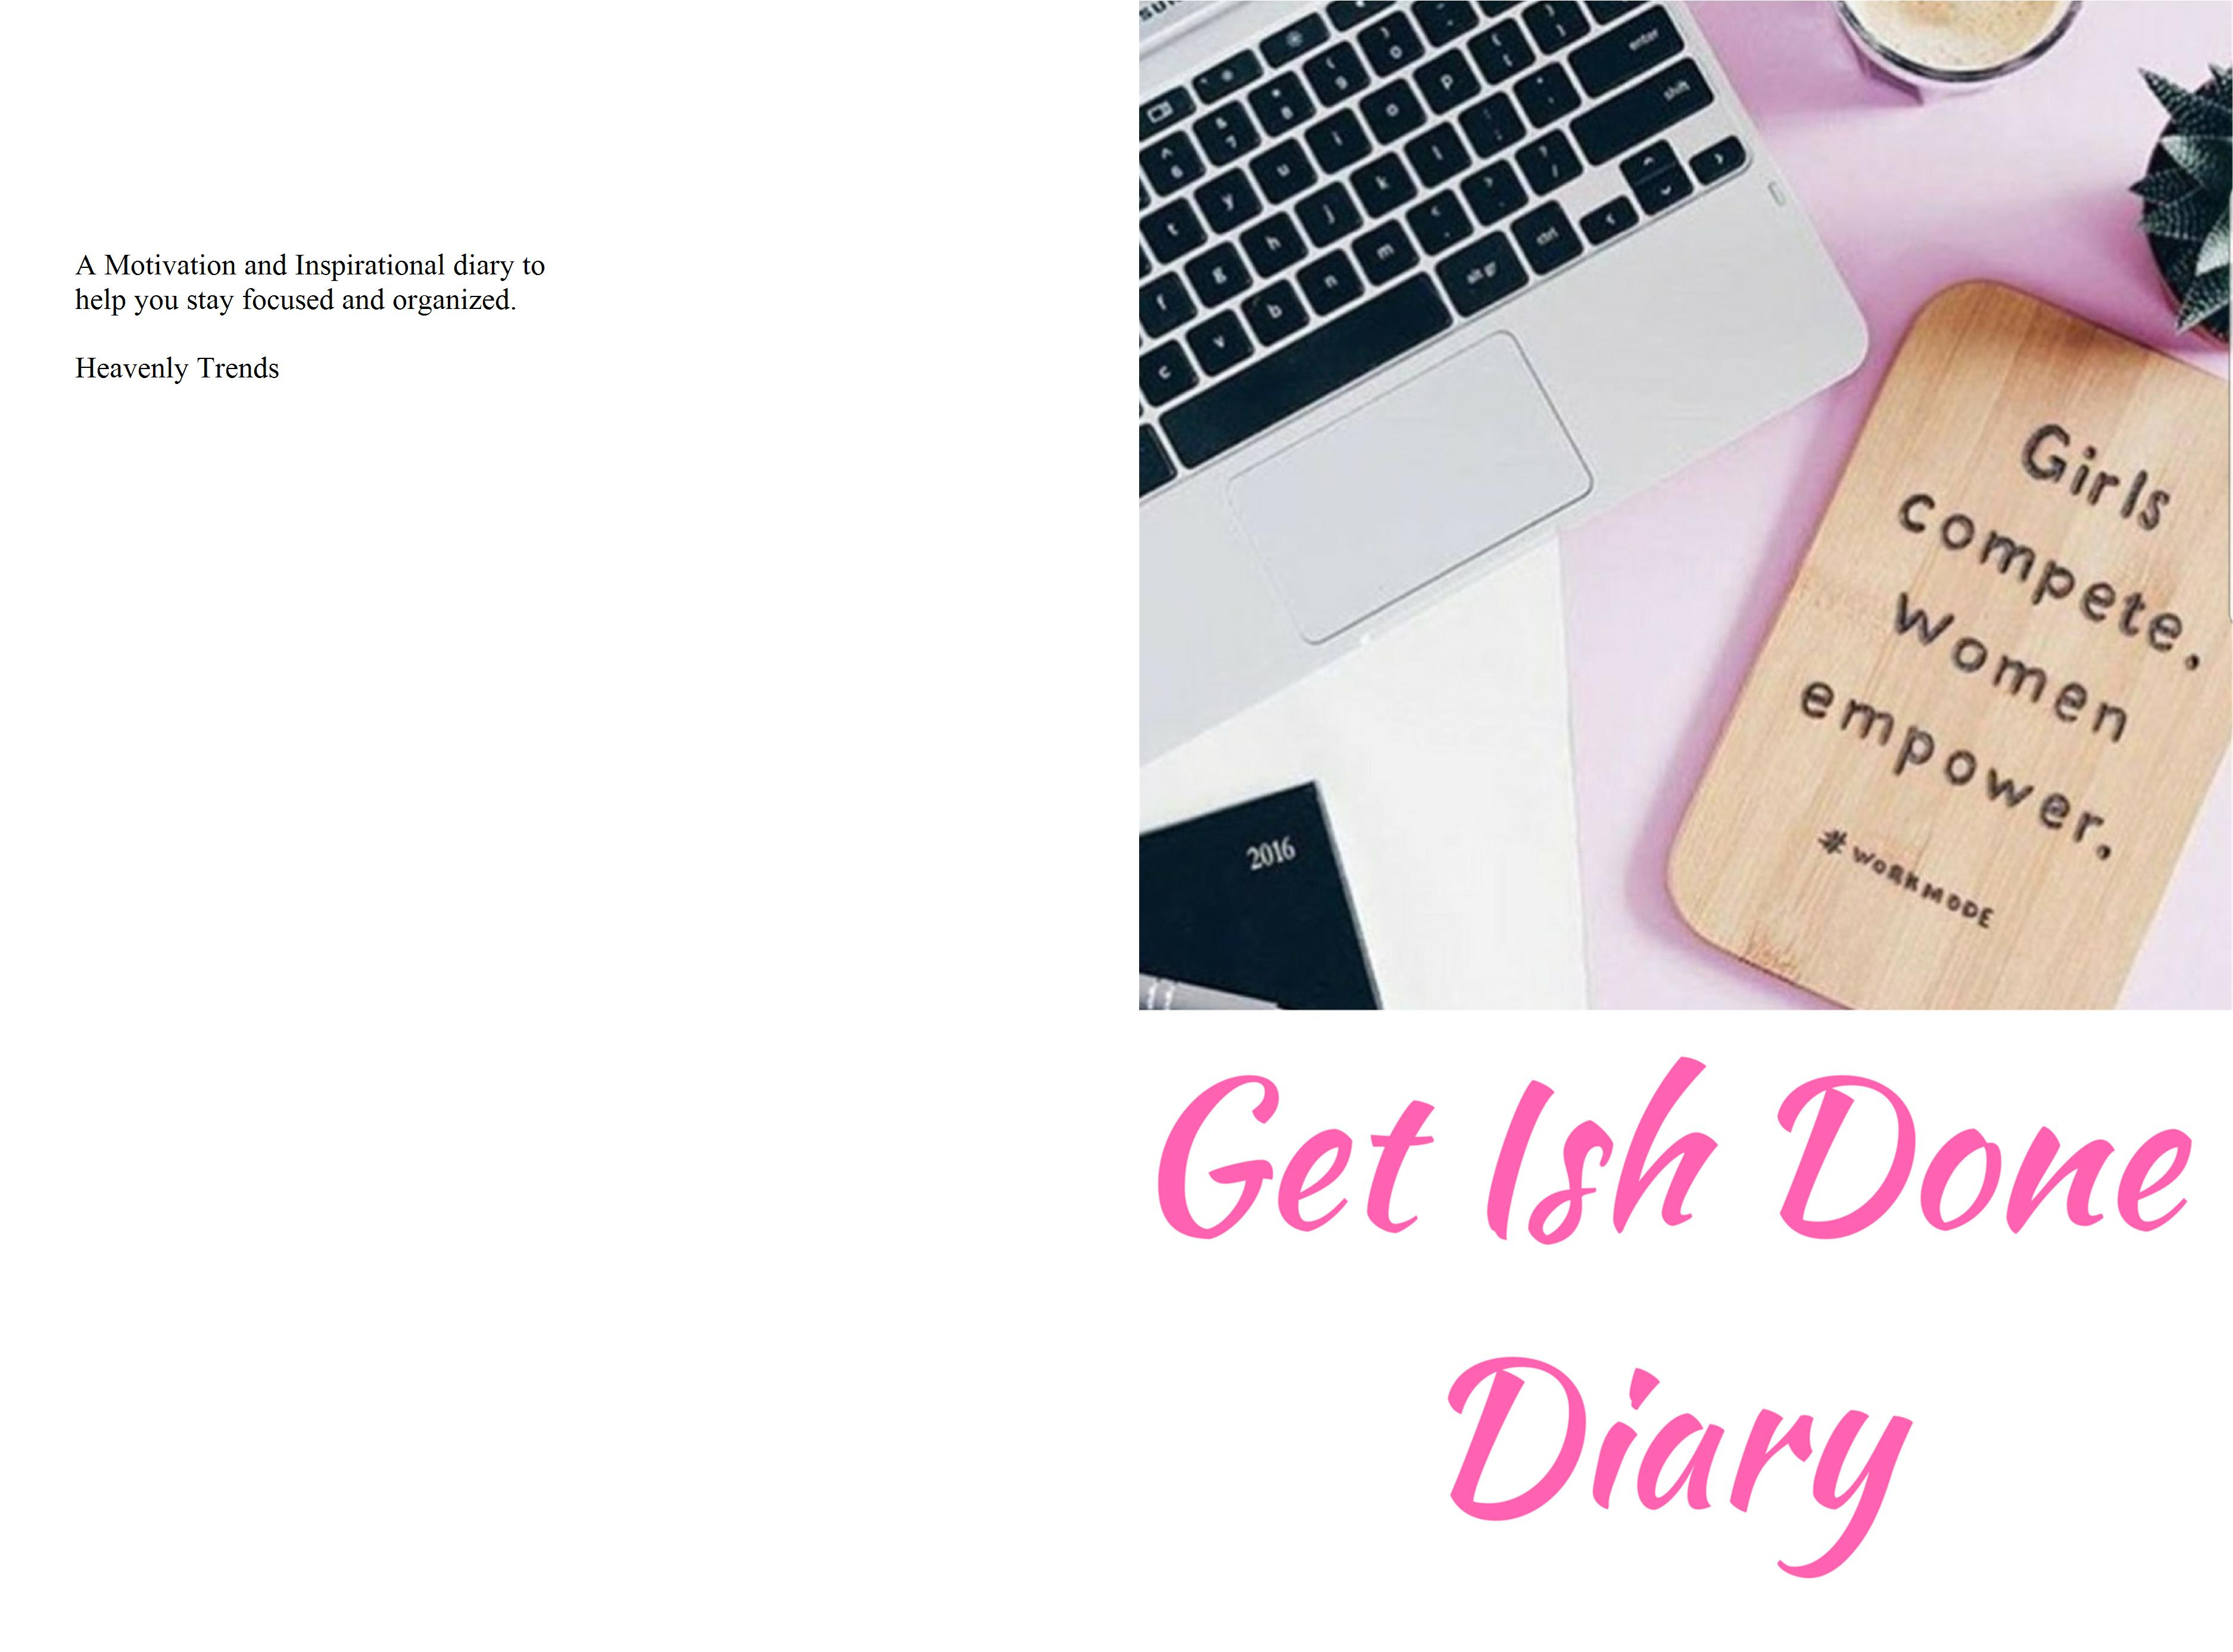 Get Ish Done Diary cover image